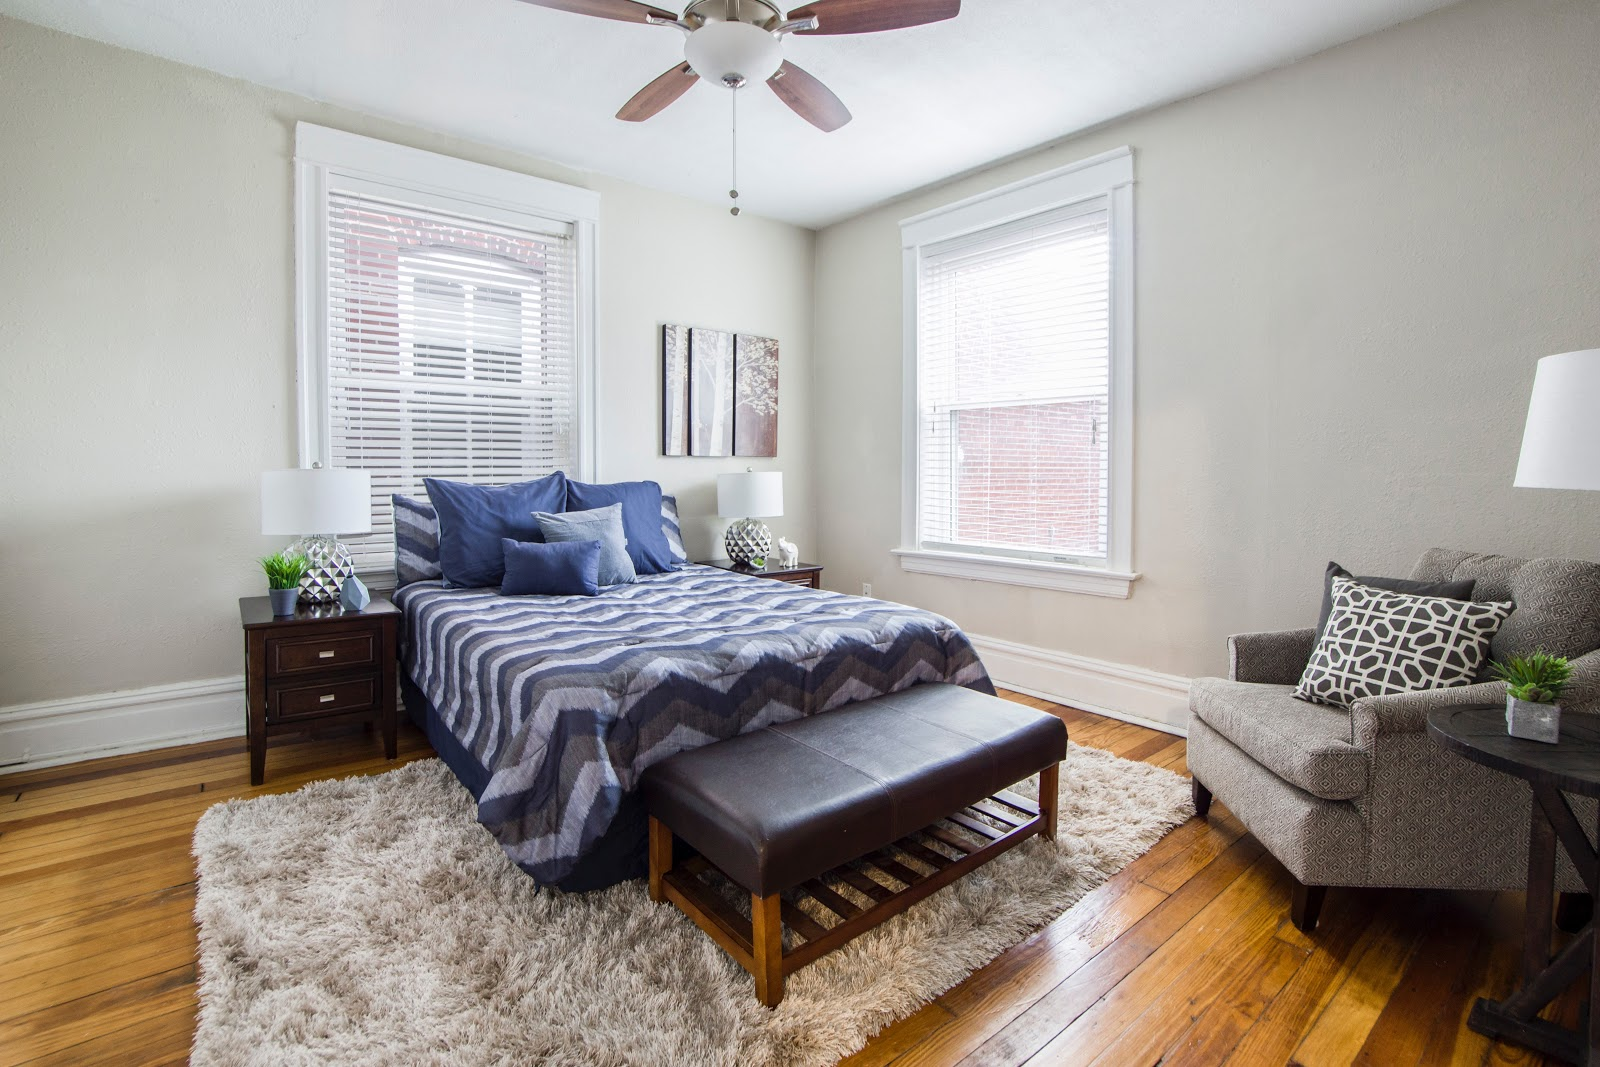 Interior of White-walled Cozy bedroom